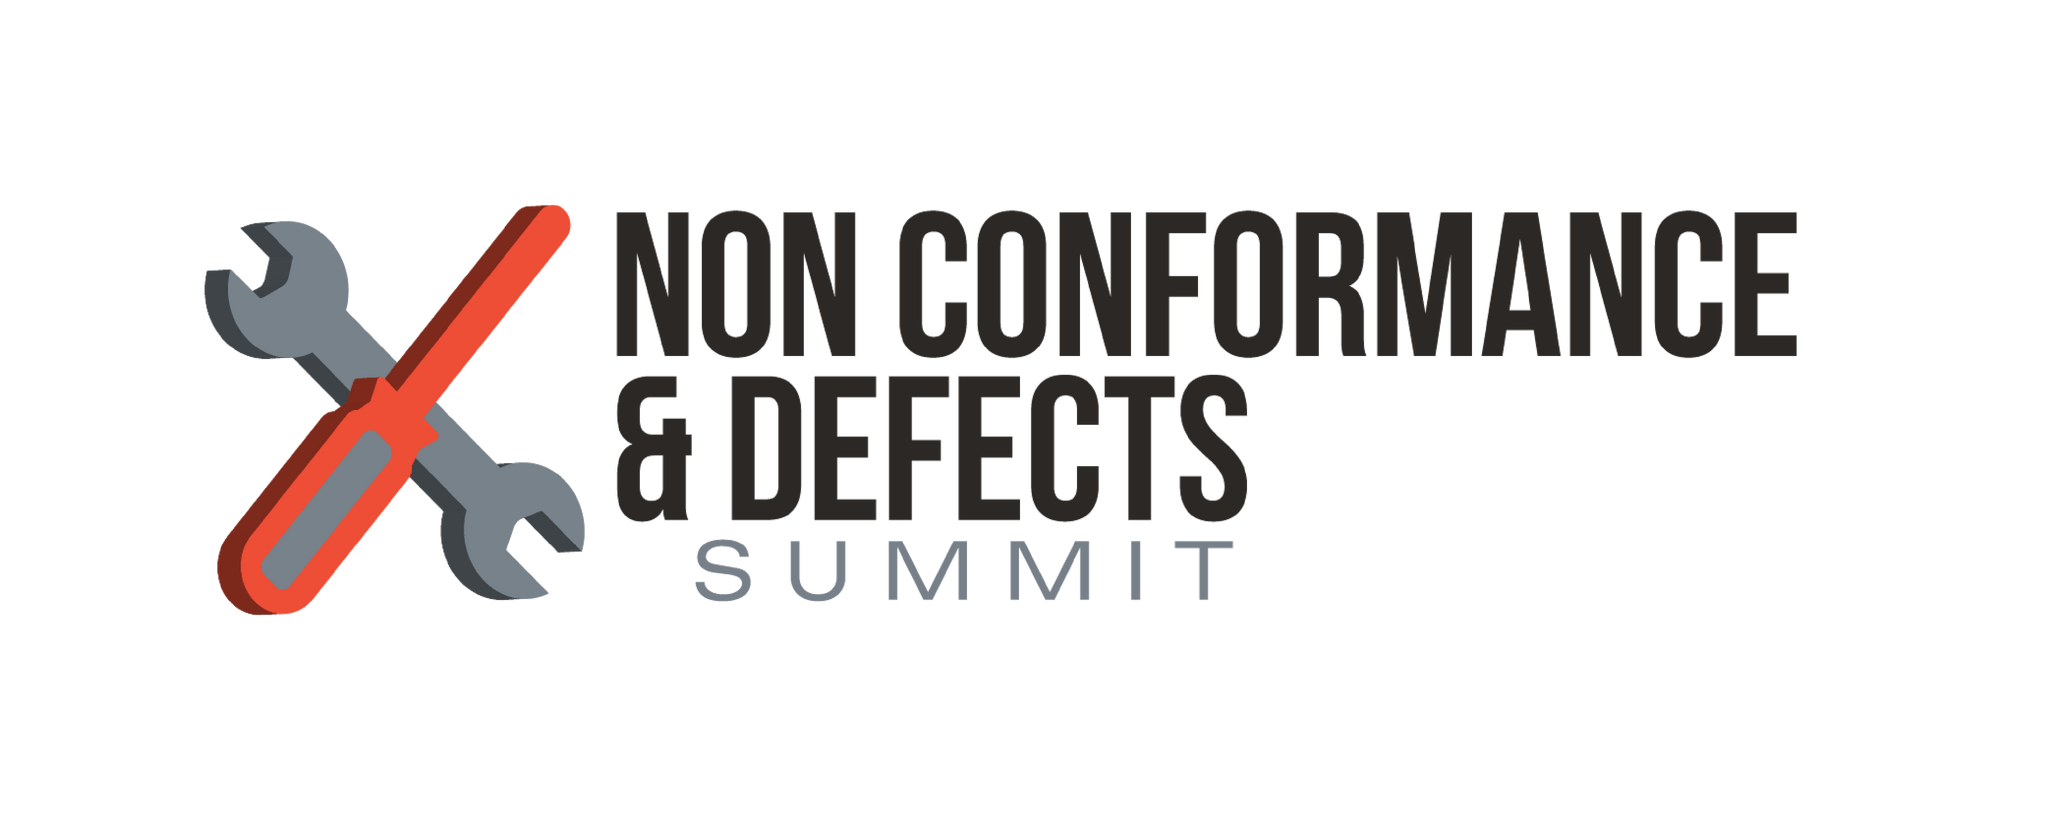 NON CONFORMANCE & DEFECTS SUMMIT